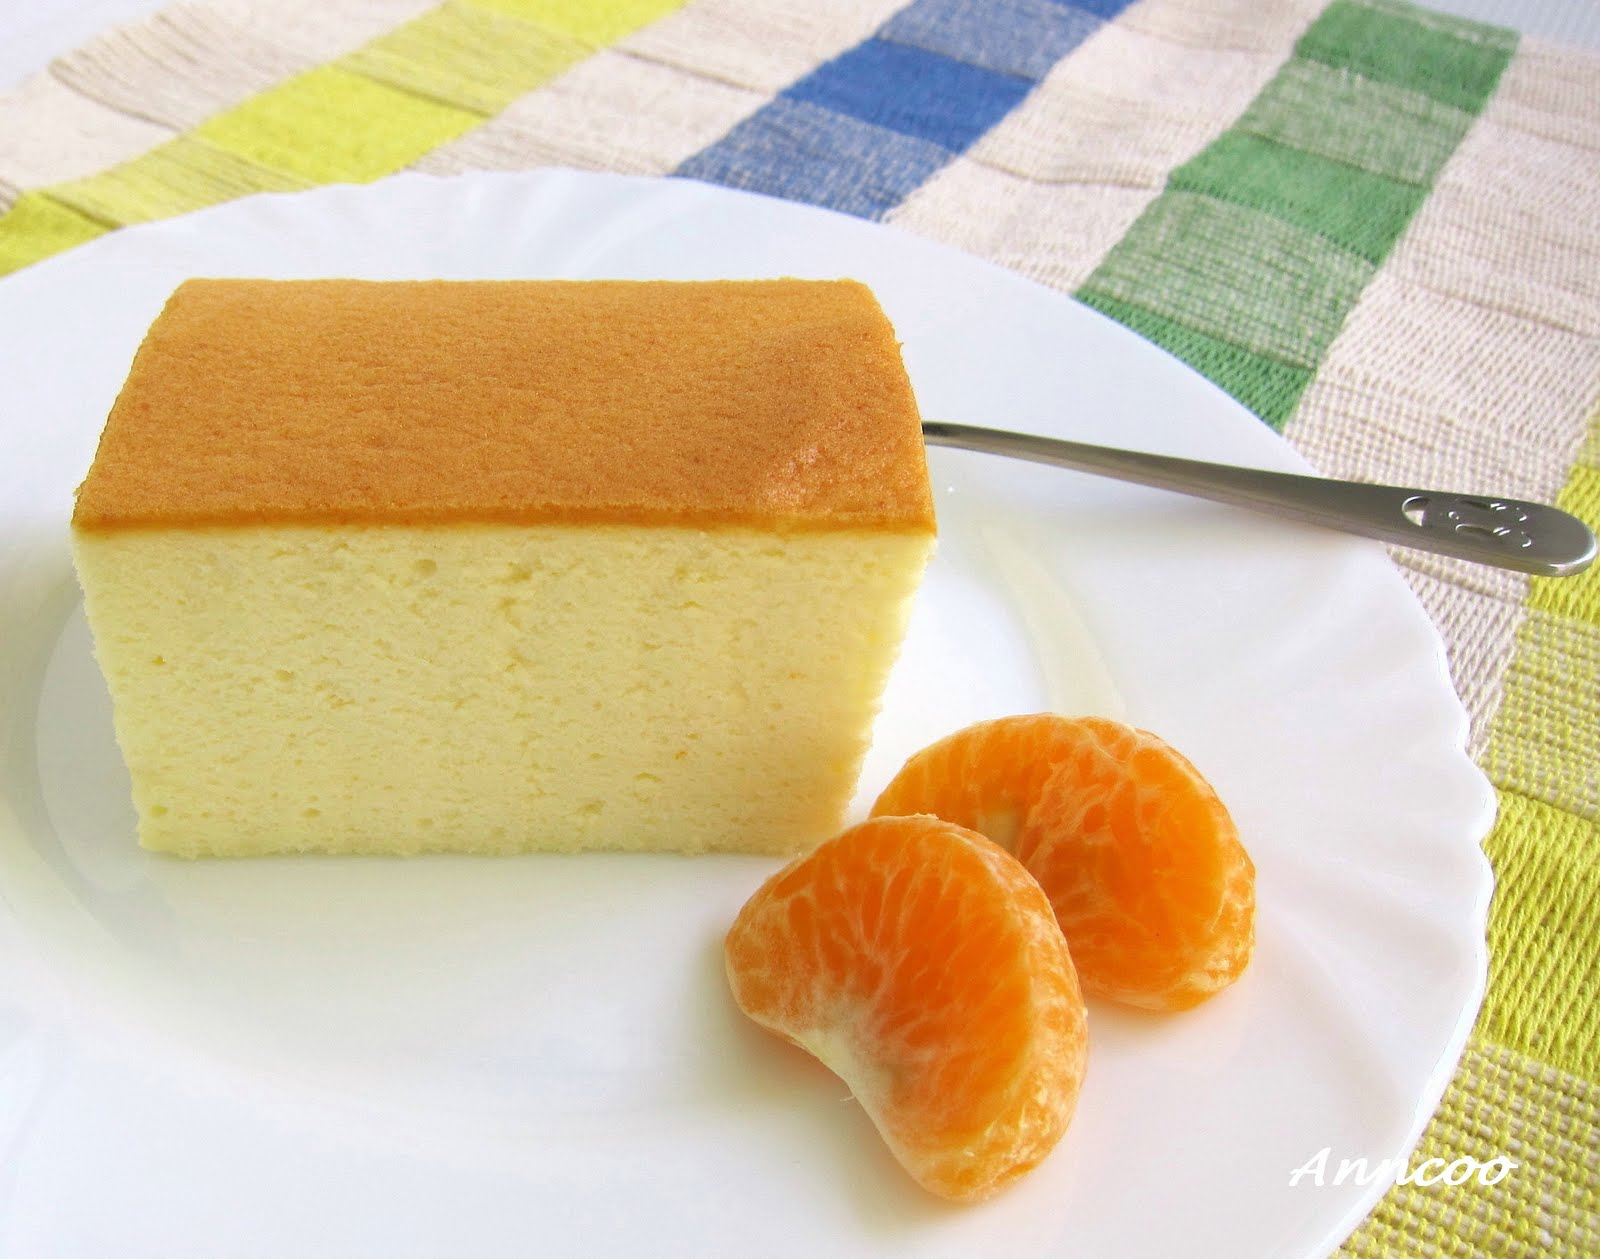 Orange Cheesecake | Anncoo Journal - Come for Quick and ...